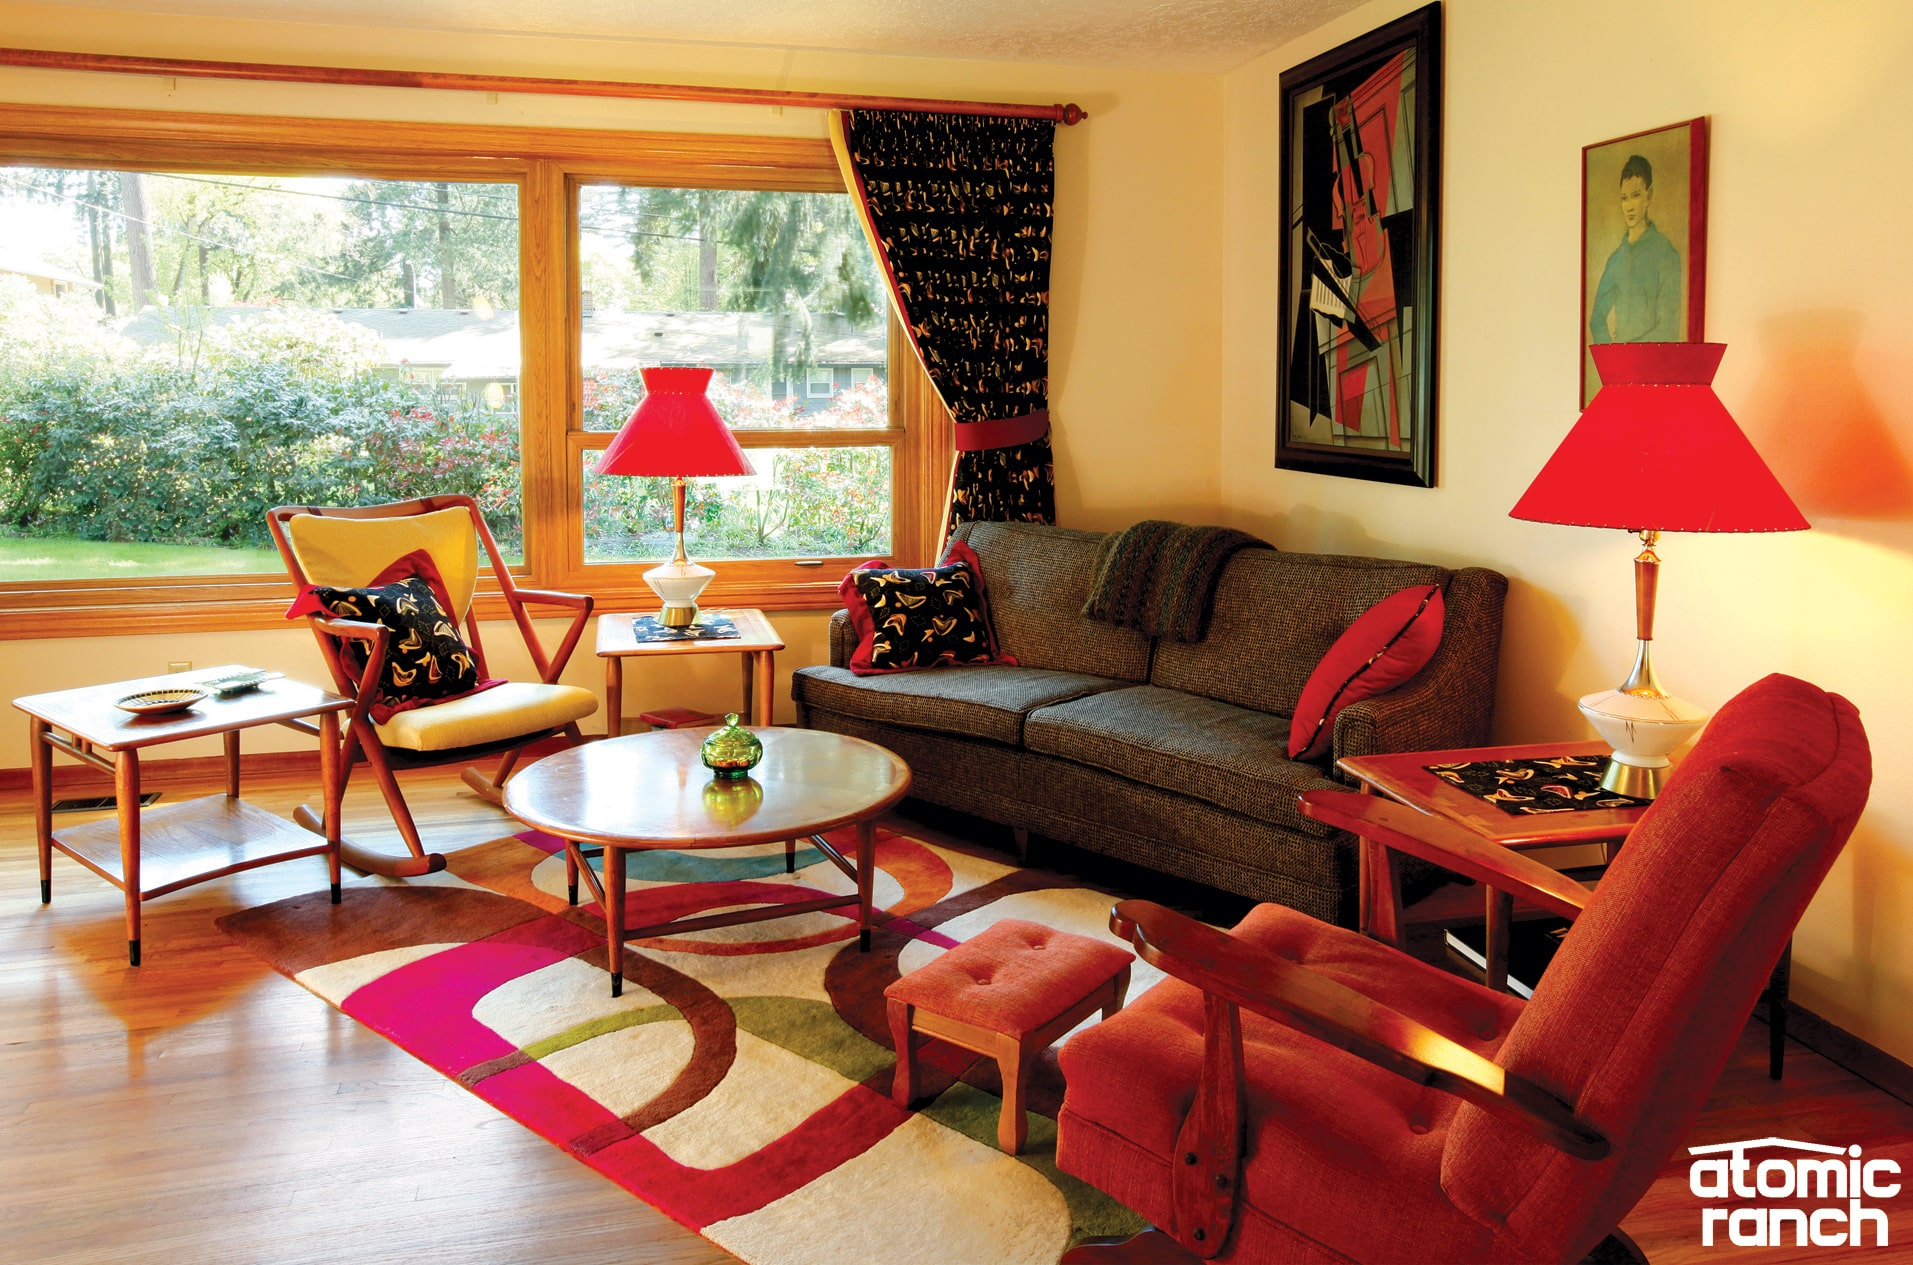 Use Big Patterns To Invoke The Midcentury Feel In Your Home.